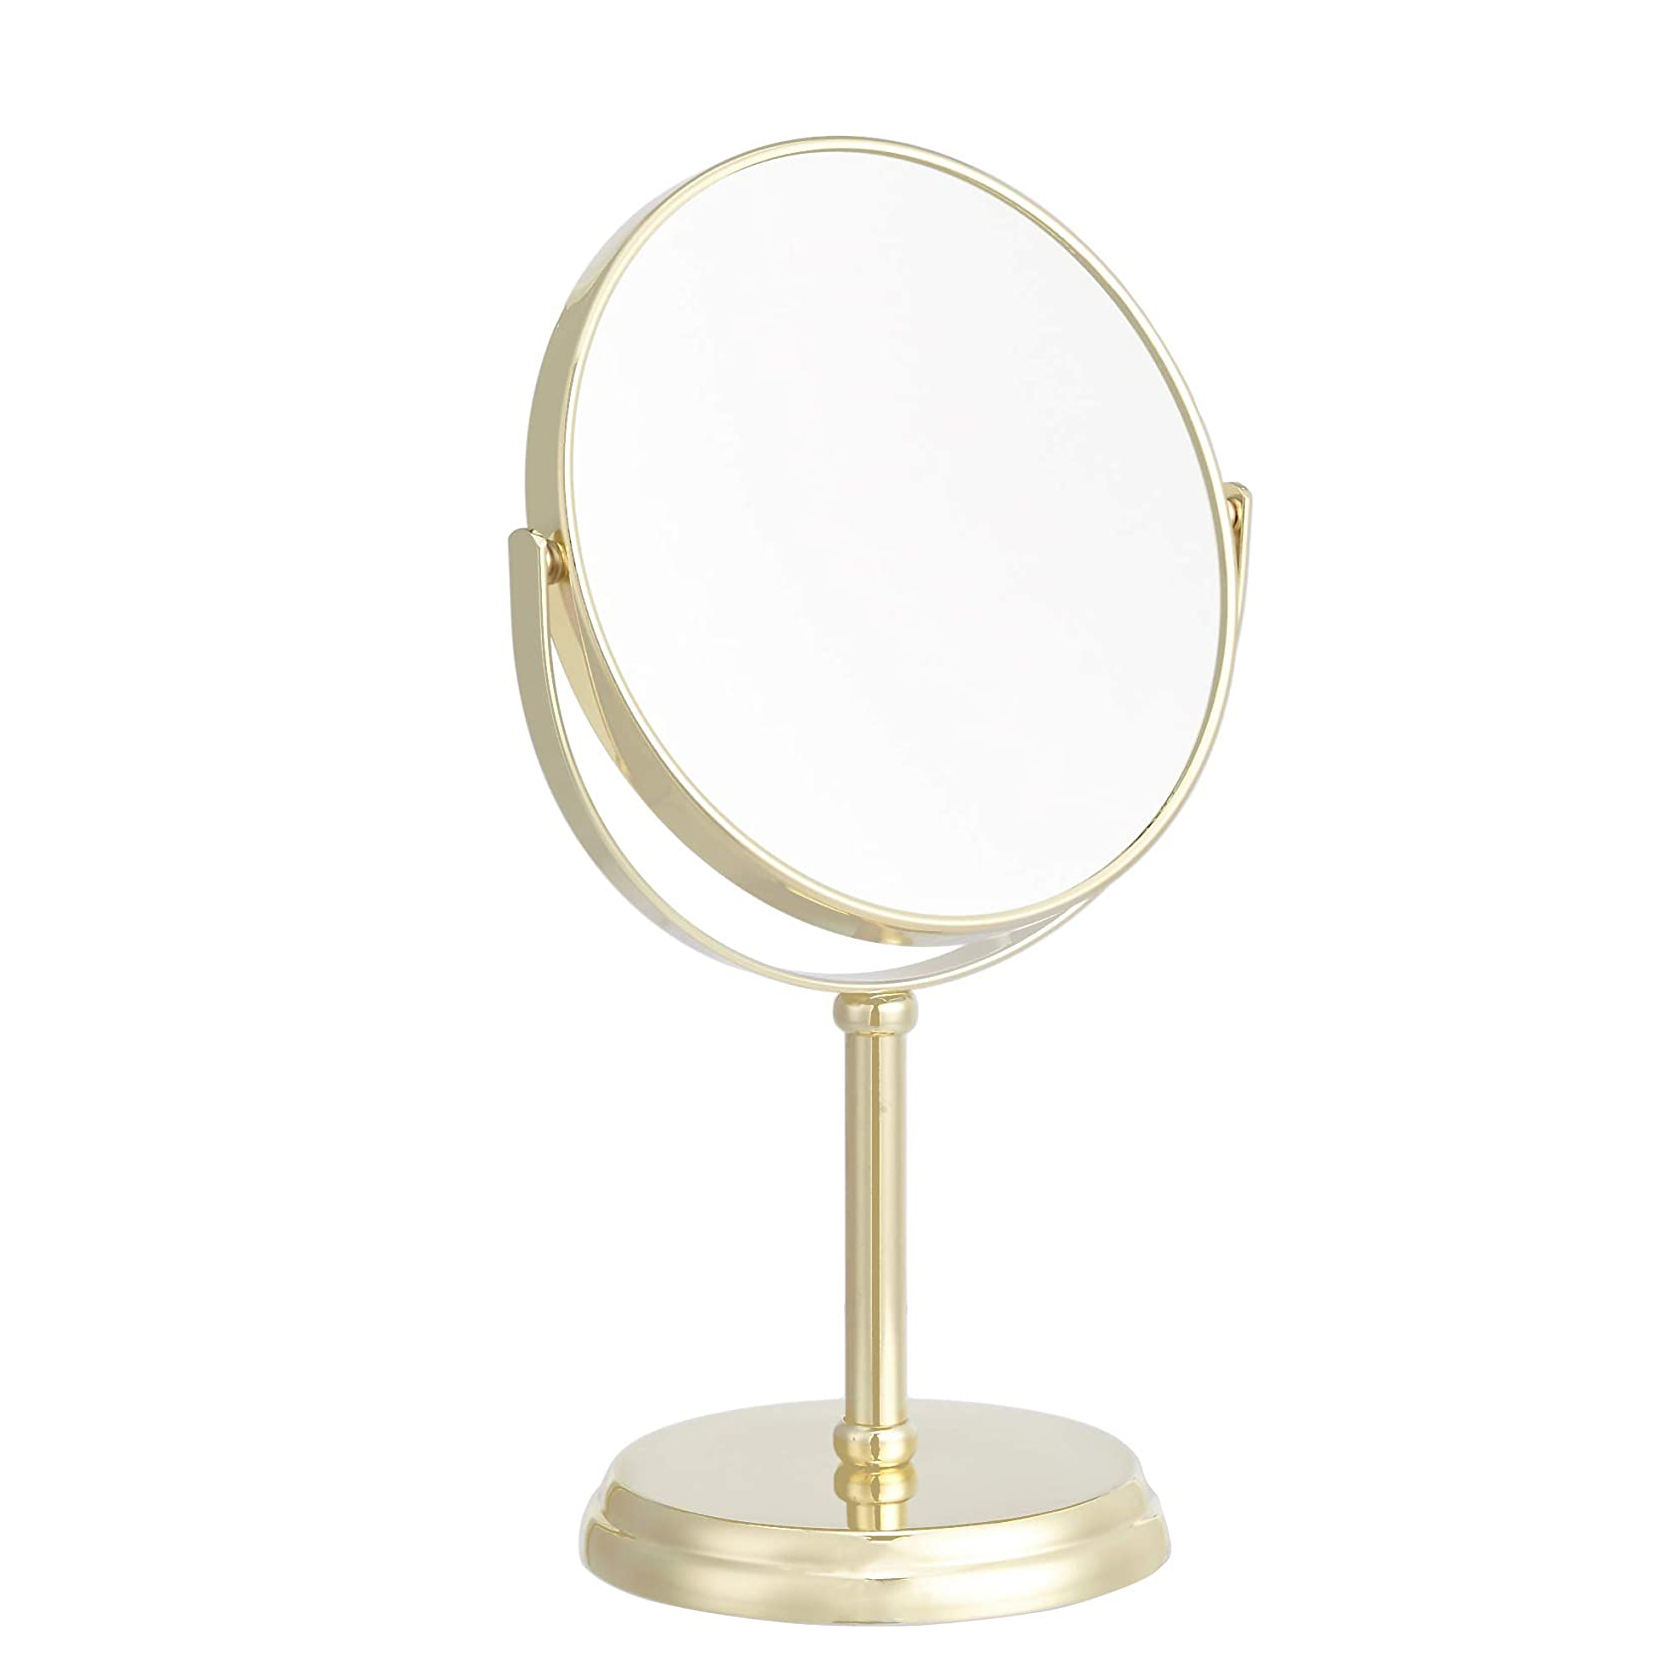 Wholesale Makeup Mirror Dressing Table Mirrors 1X/5X Magnification Gold Cosmetic tools Handmade Make Up Mirror-Gold